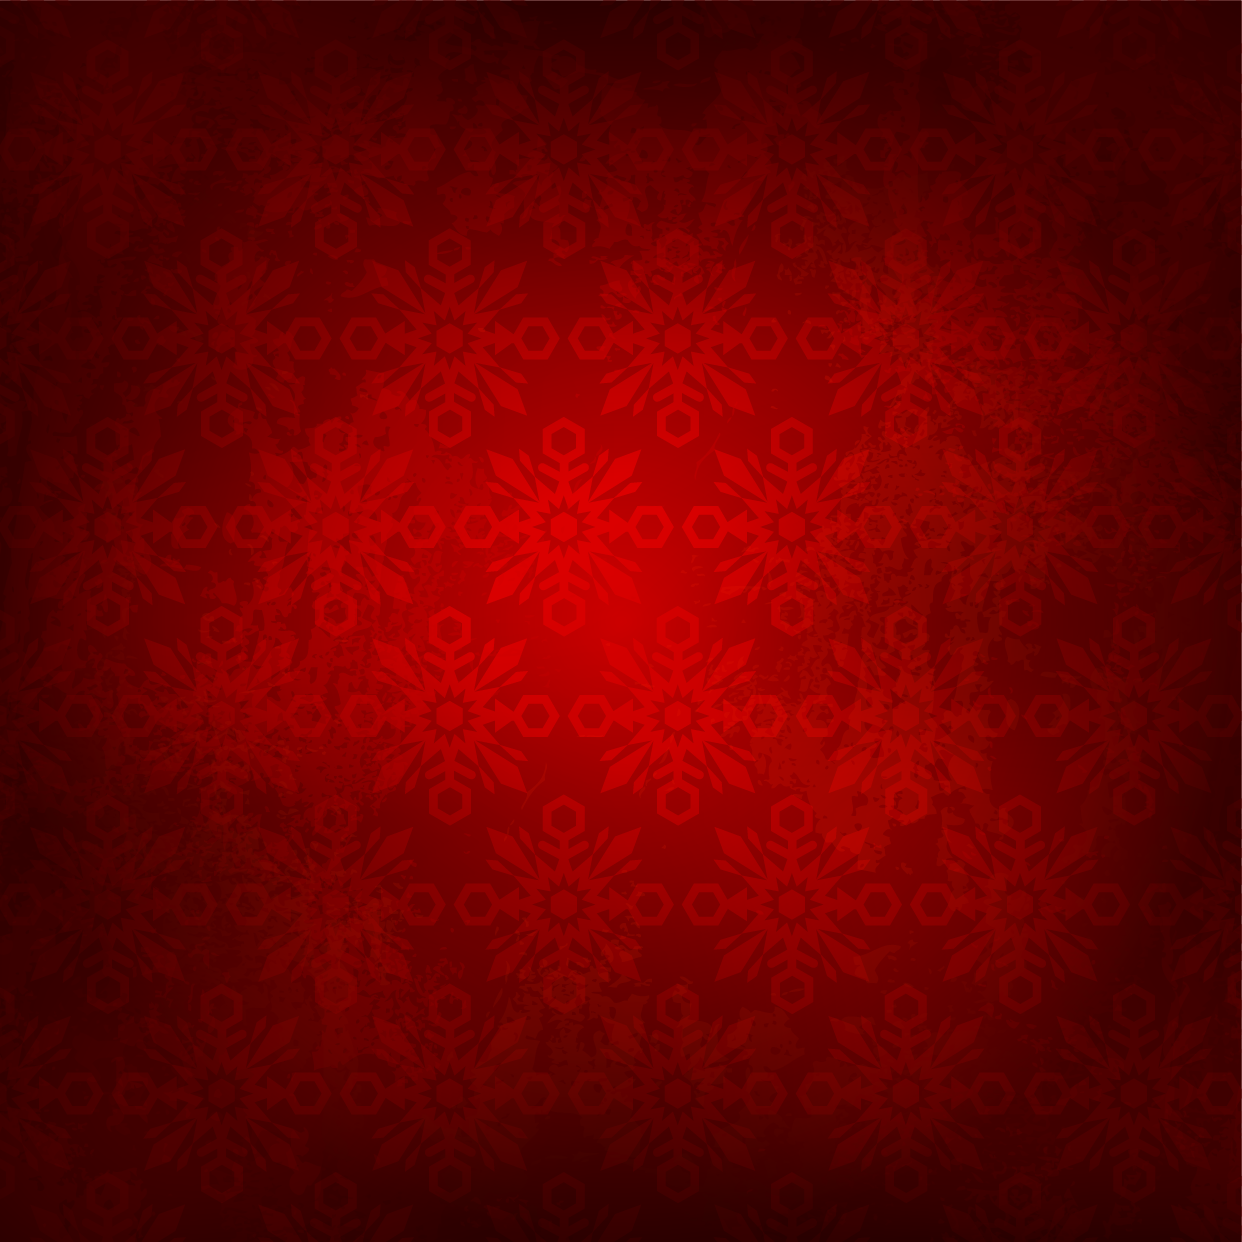 Snowflake background with red color